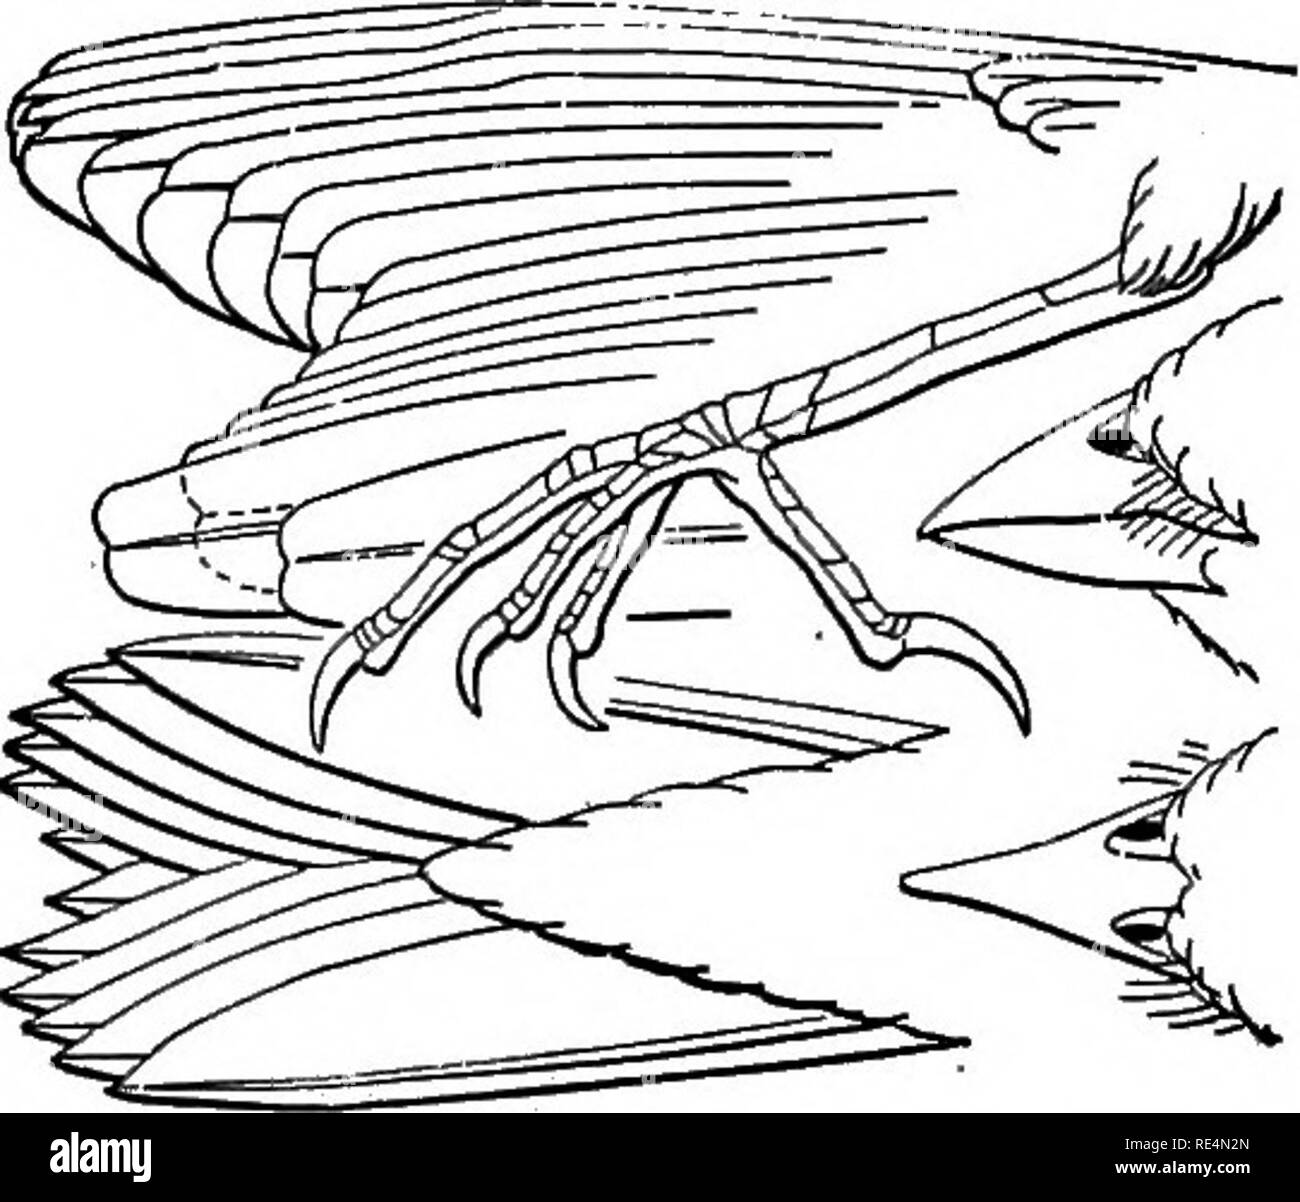 . A manual of North American birds. Birds. 4. Ammodramus (Centronyx) bairdii. 5. Ammodramus (Coturniculusj passerinus.. Please note that these images are extracted from scanned page images that may have been digitally enhanced for readability - coloration and appearance of these illustrations may not perfectly resemble the original work.. Ridgway, Robert, 1850-1929. Philadelphia, J. B. Lippincott Company - Stock Image